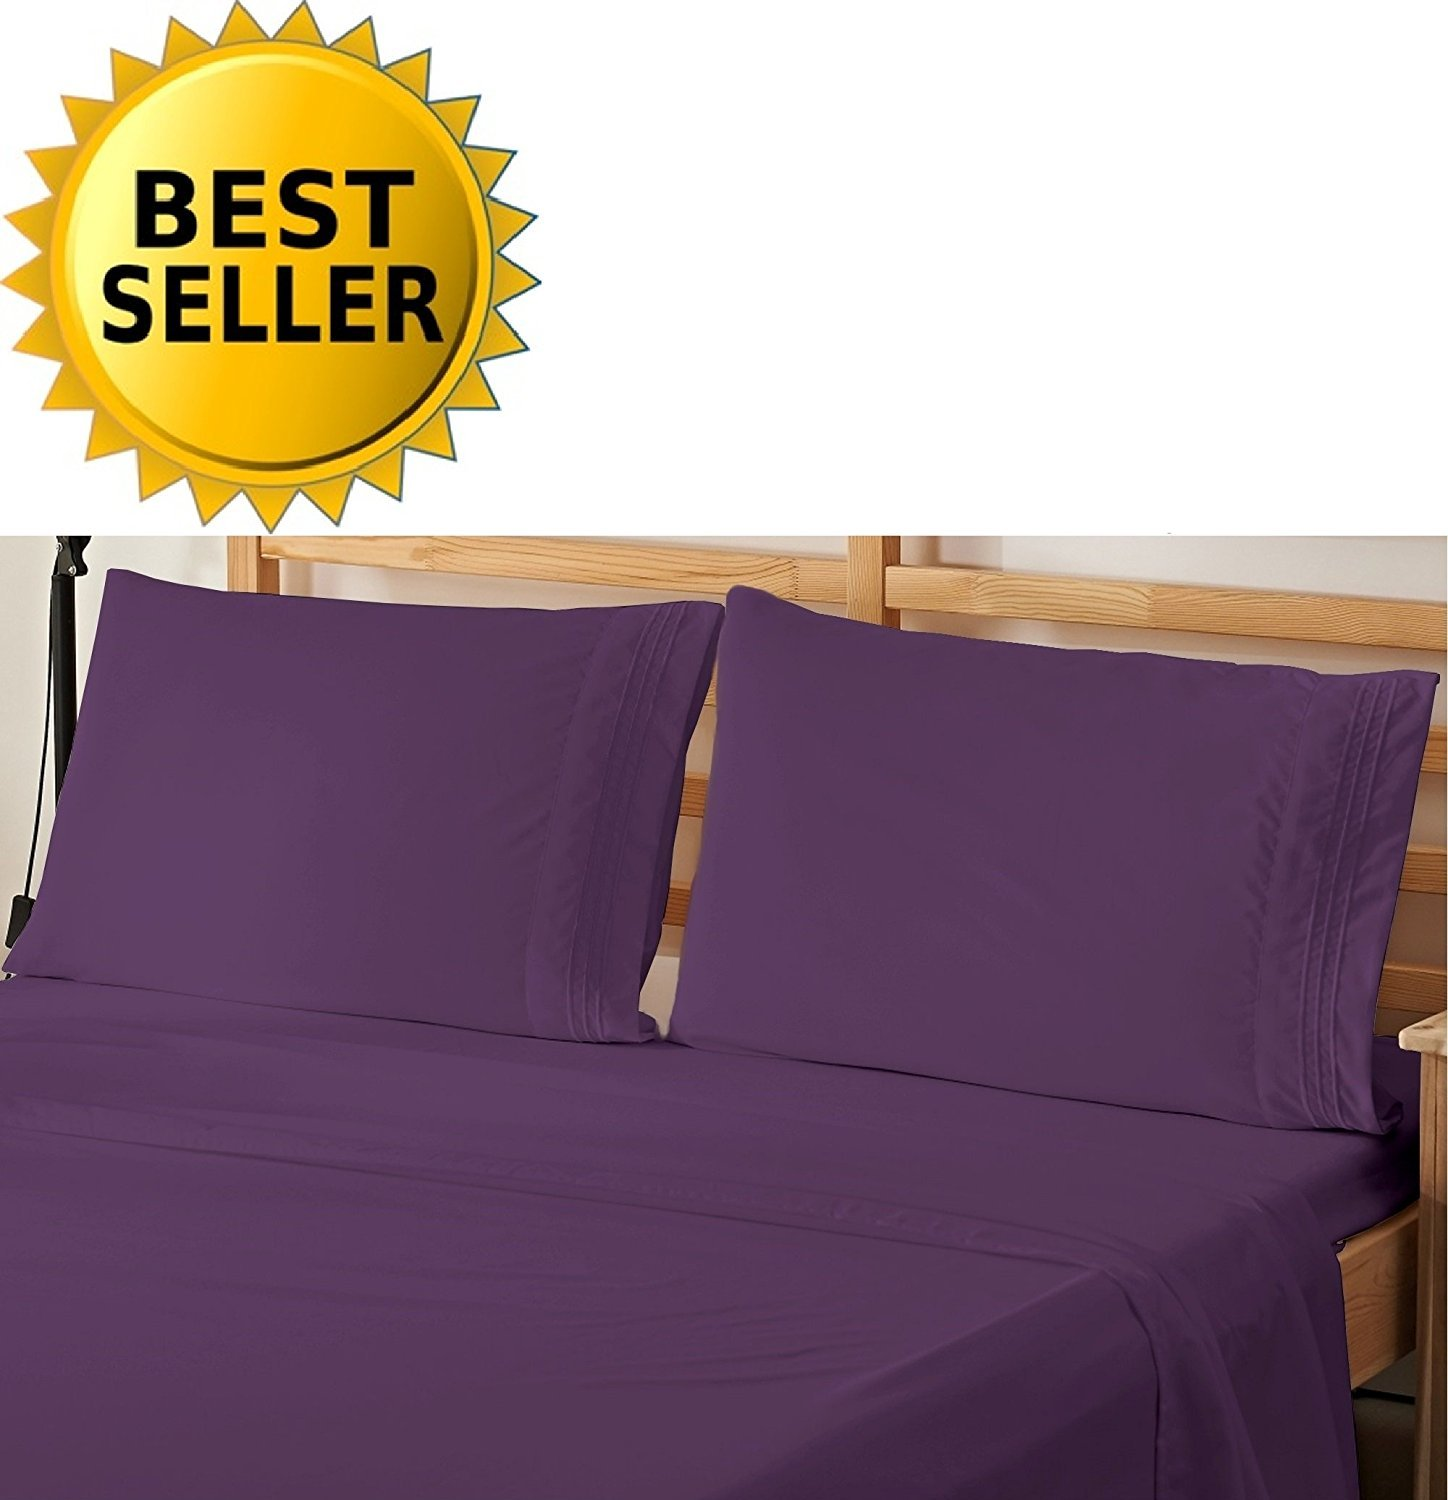 4-Piece Bed Sheet Bedding Set California King, Eggplant-Purple